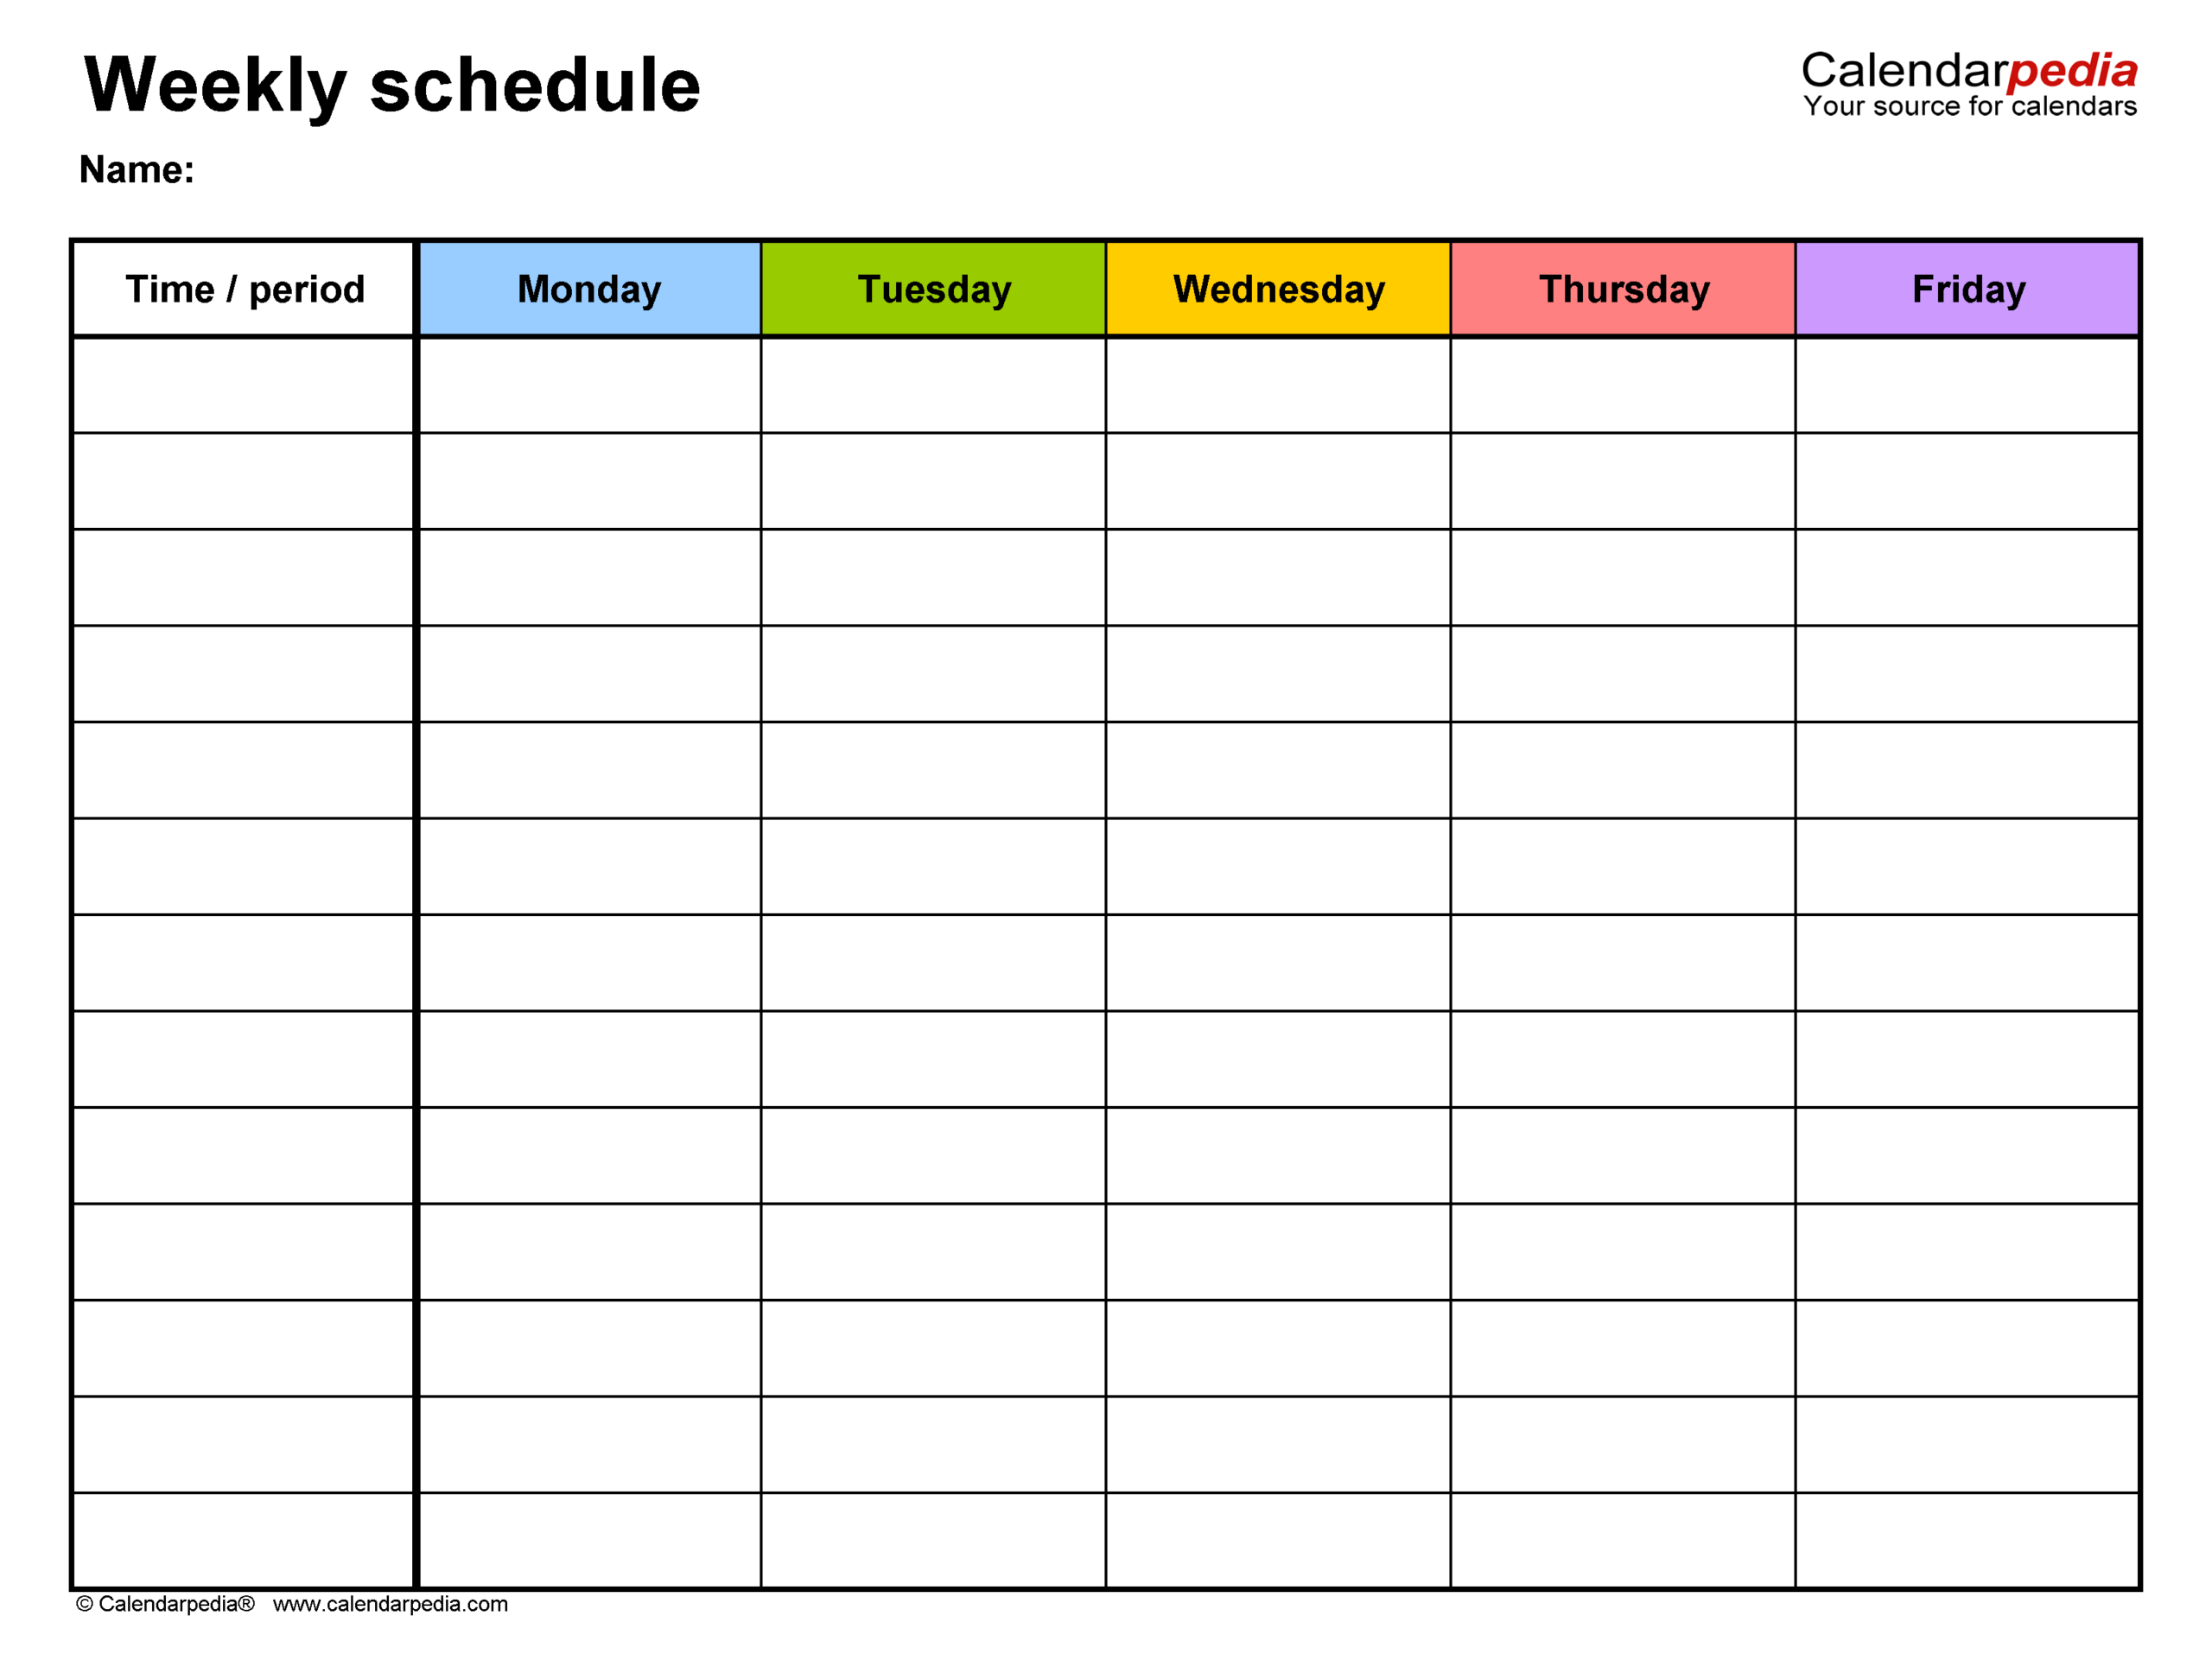 Free Weekly Schedule Templates For Word  18 Templates throughout Monday To Friday Calendar